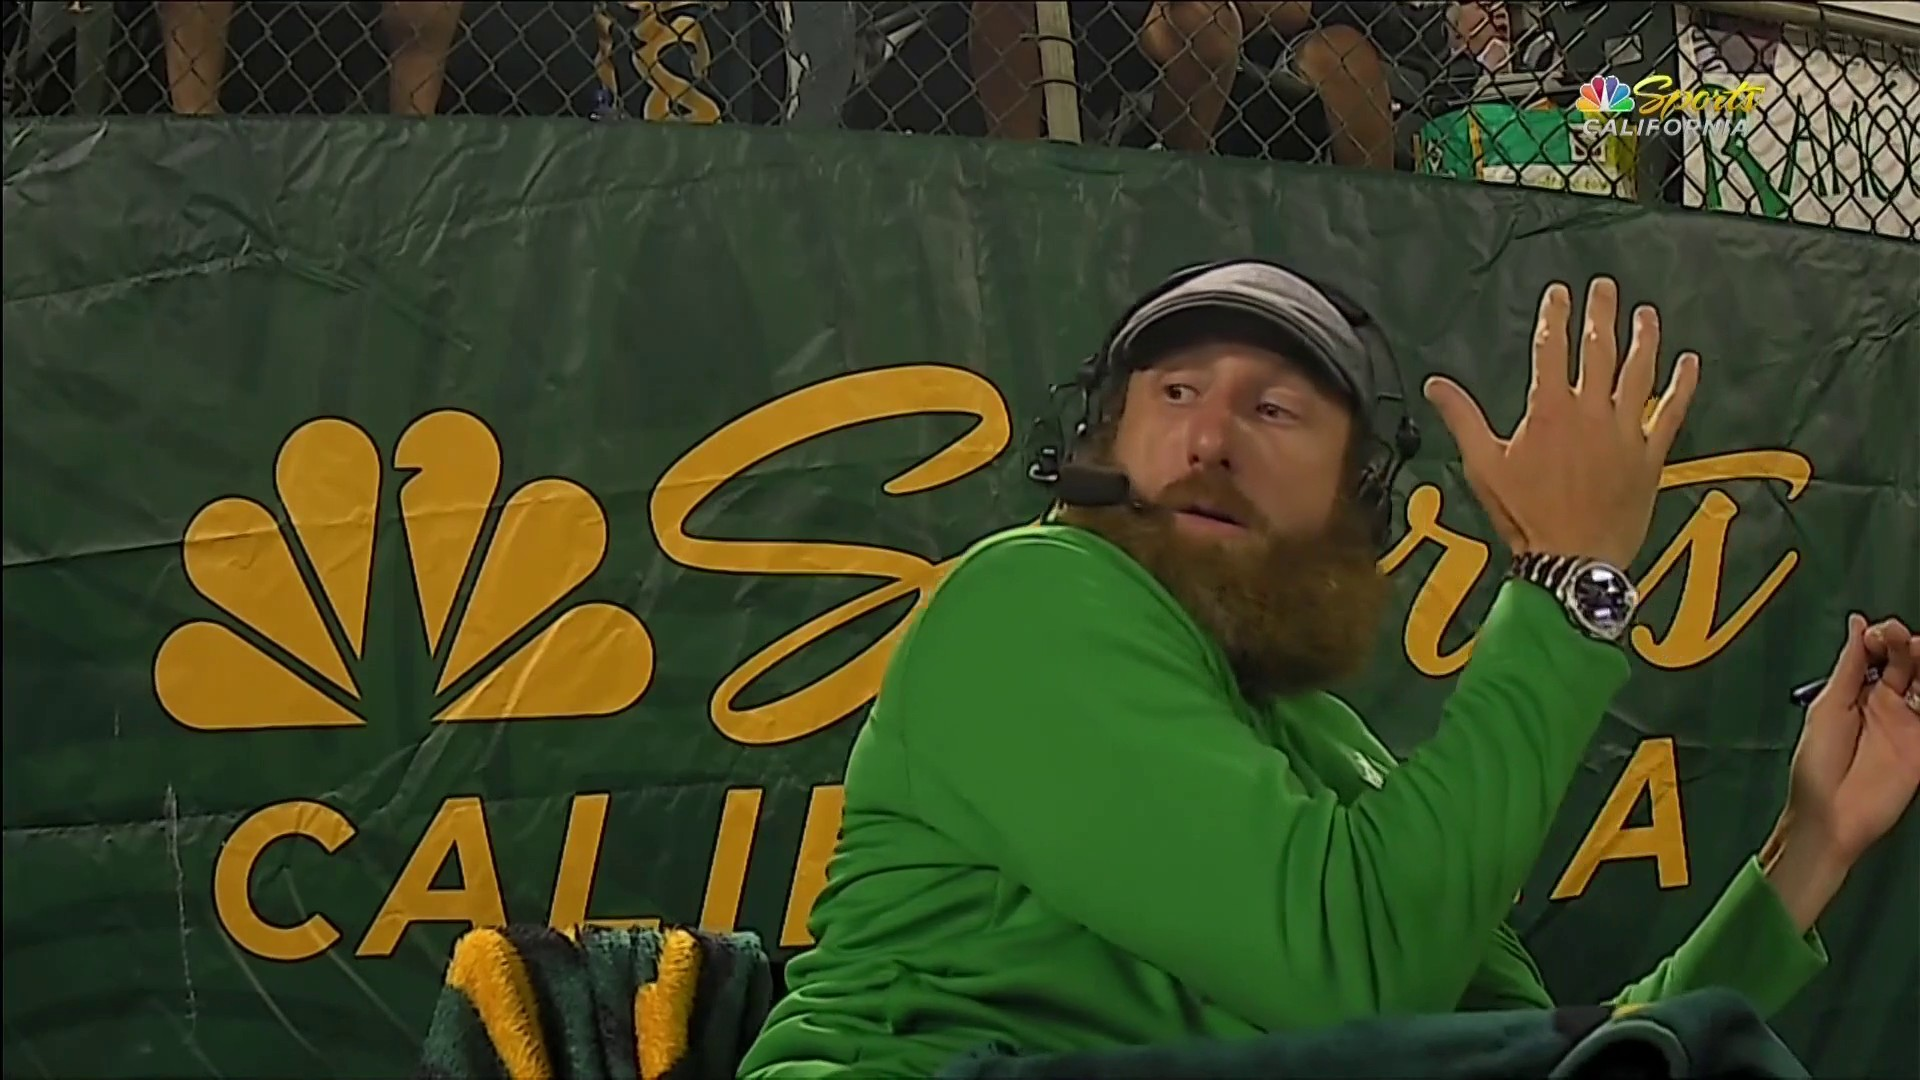 Look out! Net saves Dallas Braden from getting impaled by broken bat